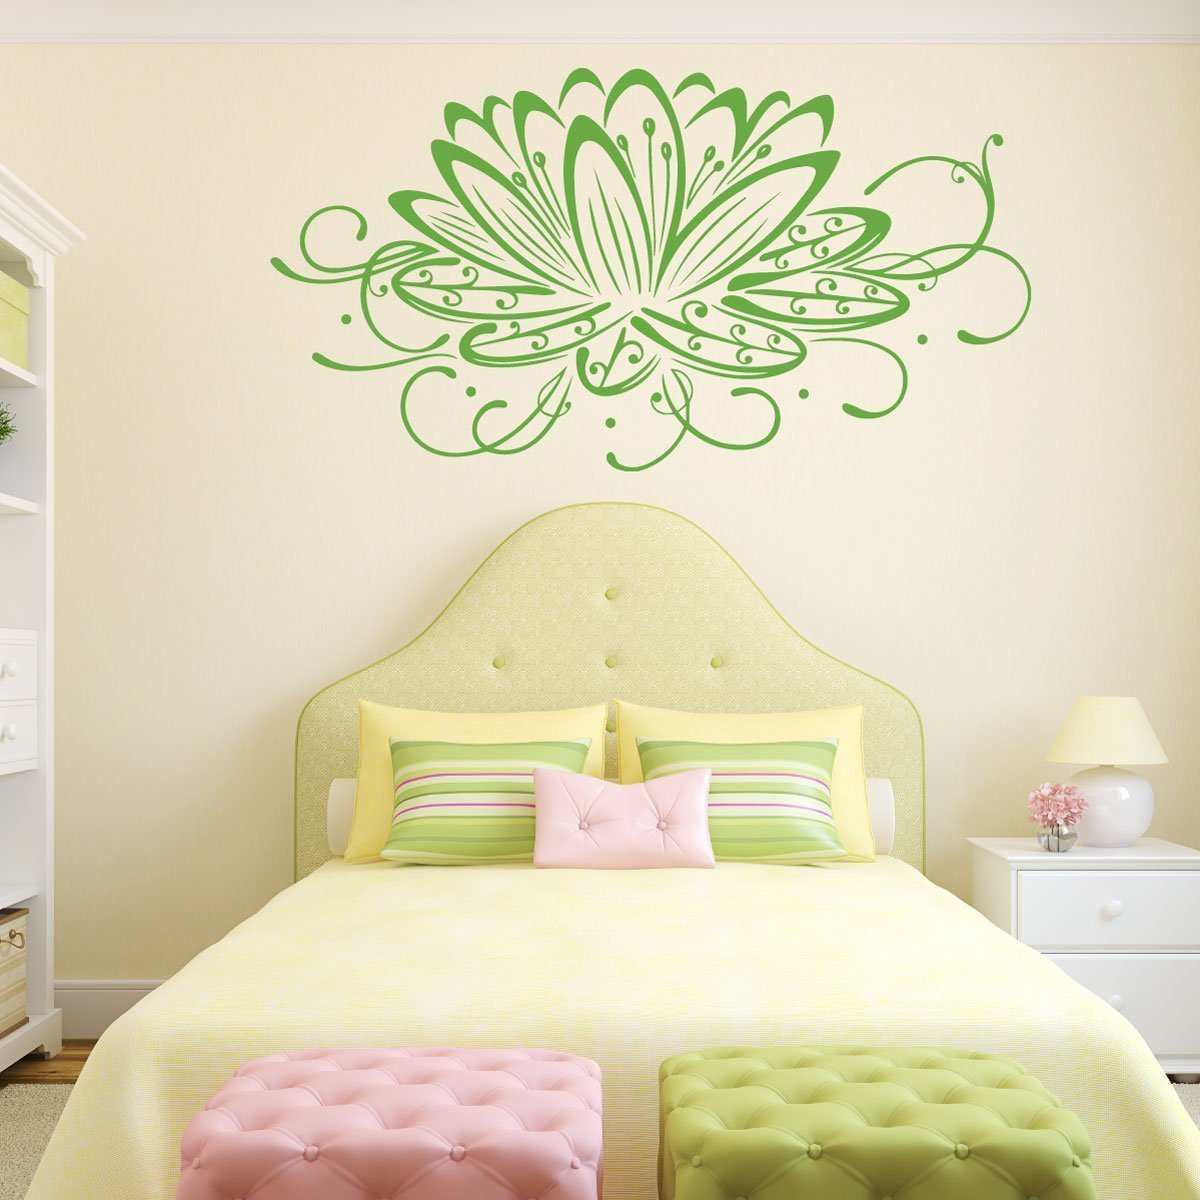 Lotus Flower Wall Decal   Flower Decals